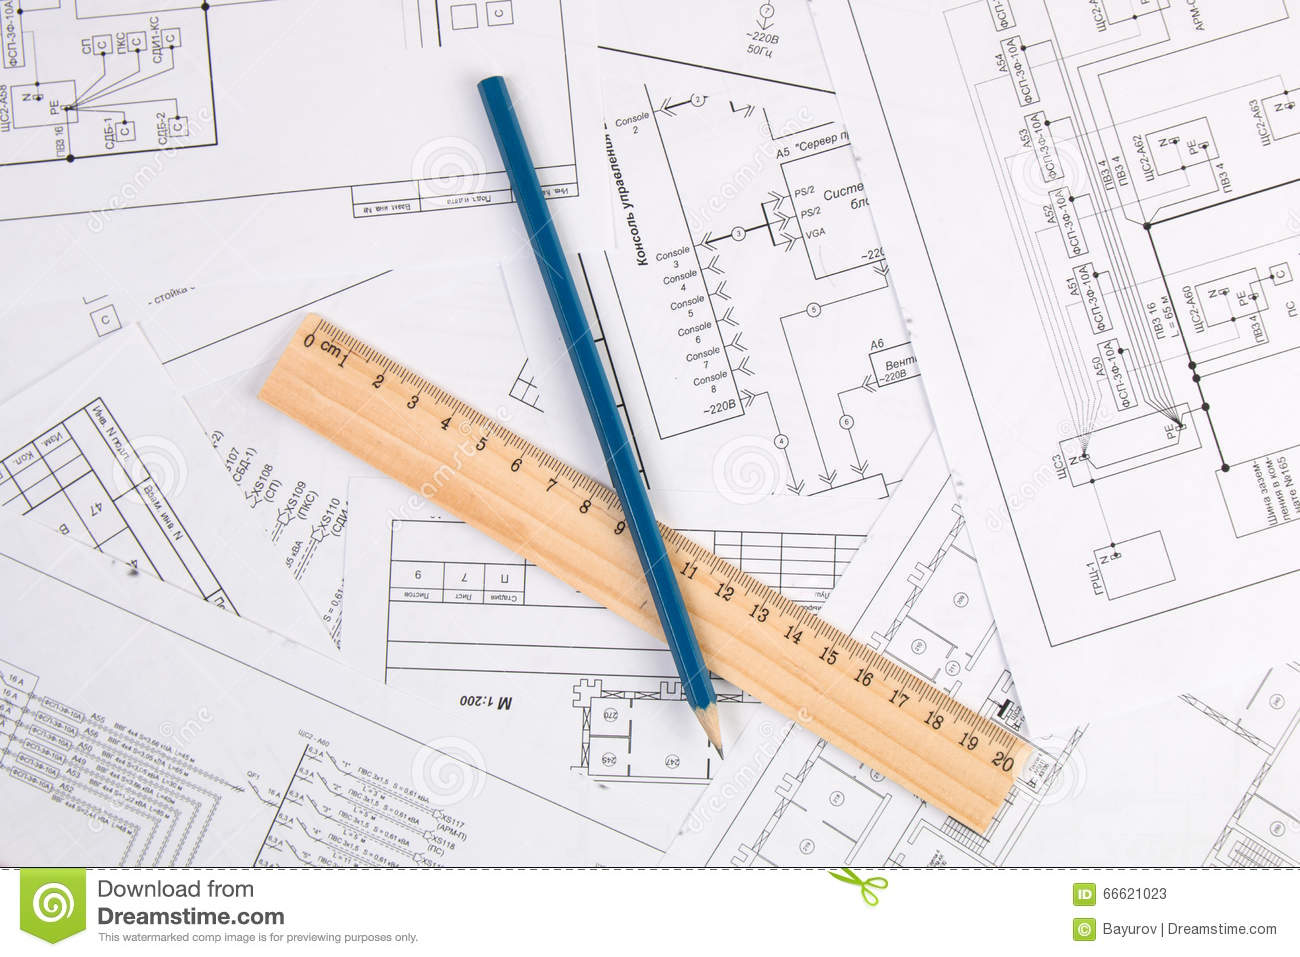 Electrical Engineering Drawings Pencil And Ruler Stock Image Diagram Printing